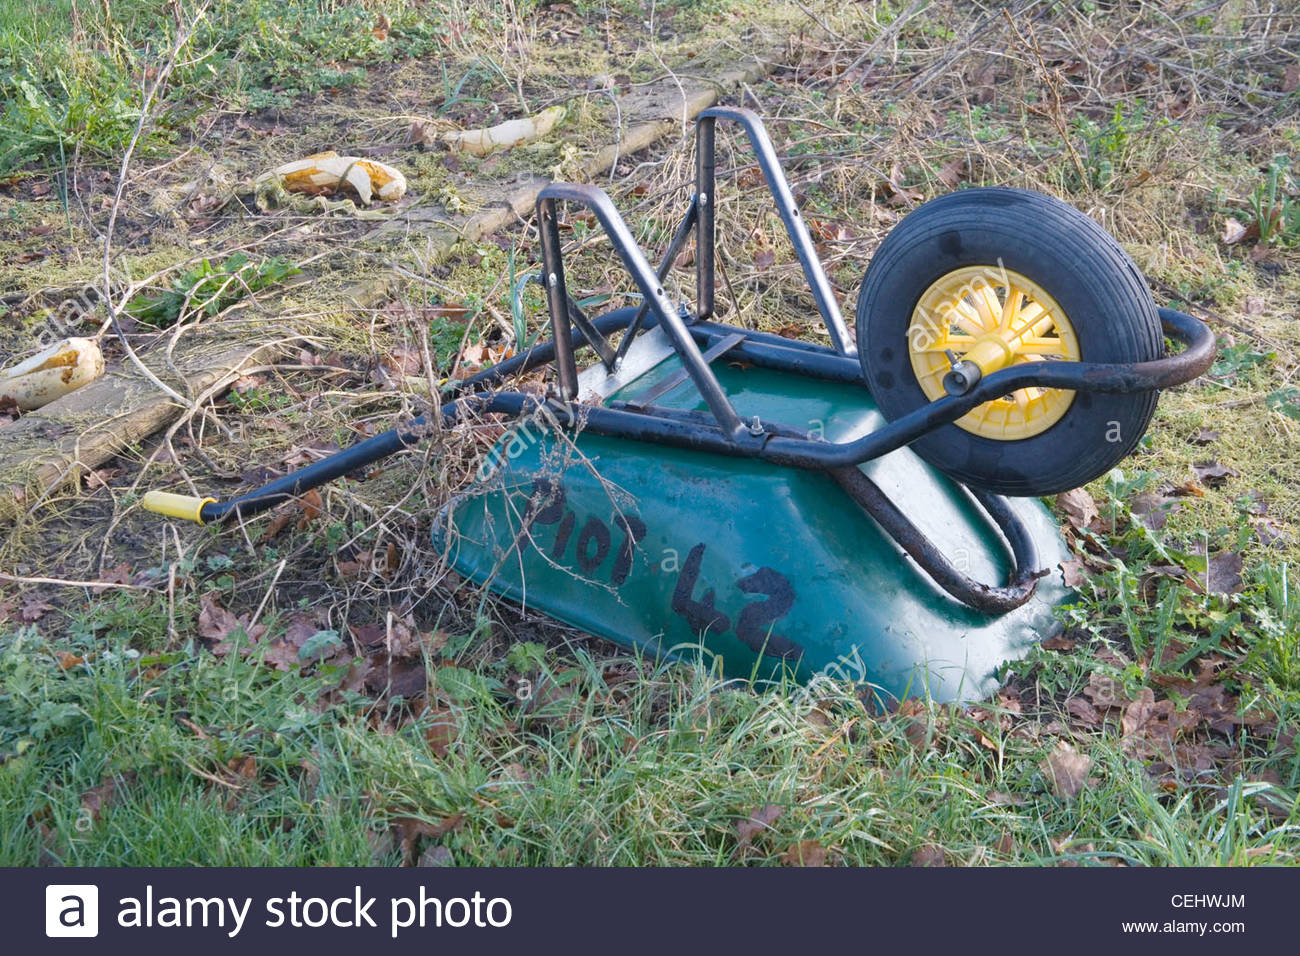 burgess hill allotment wheelbarrows in January - Stock Image